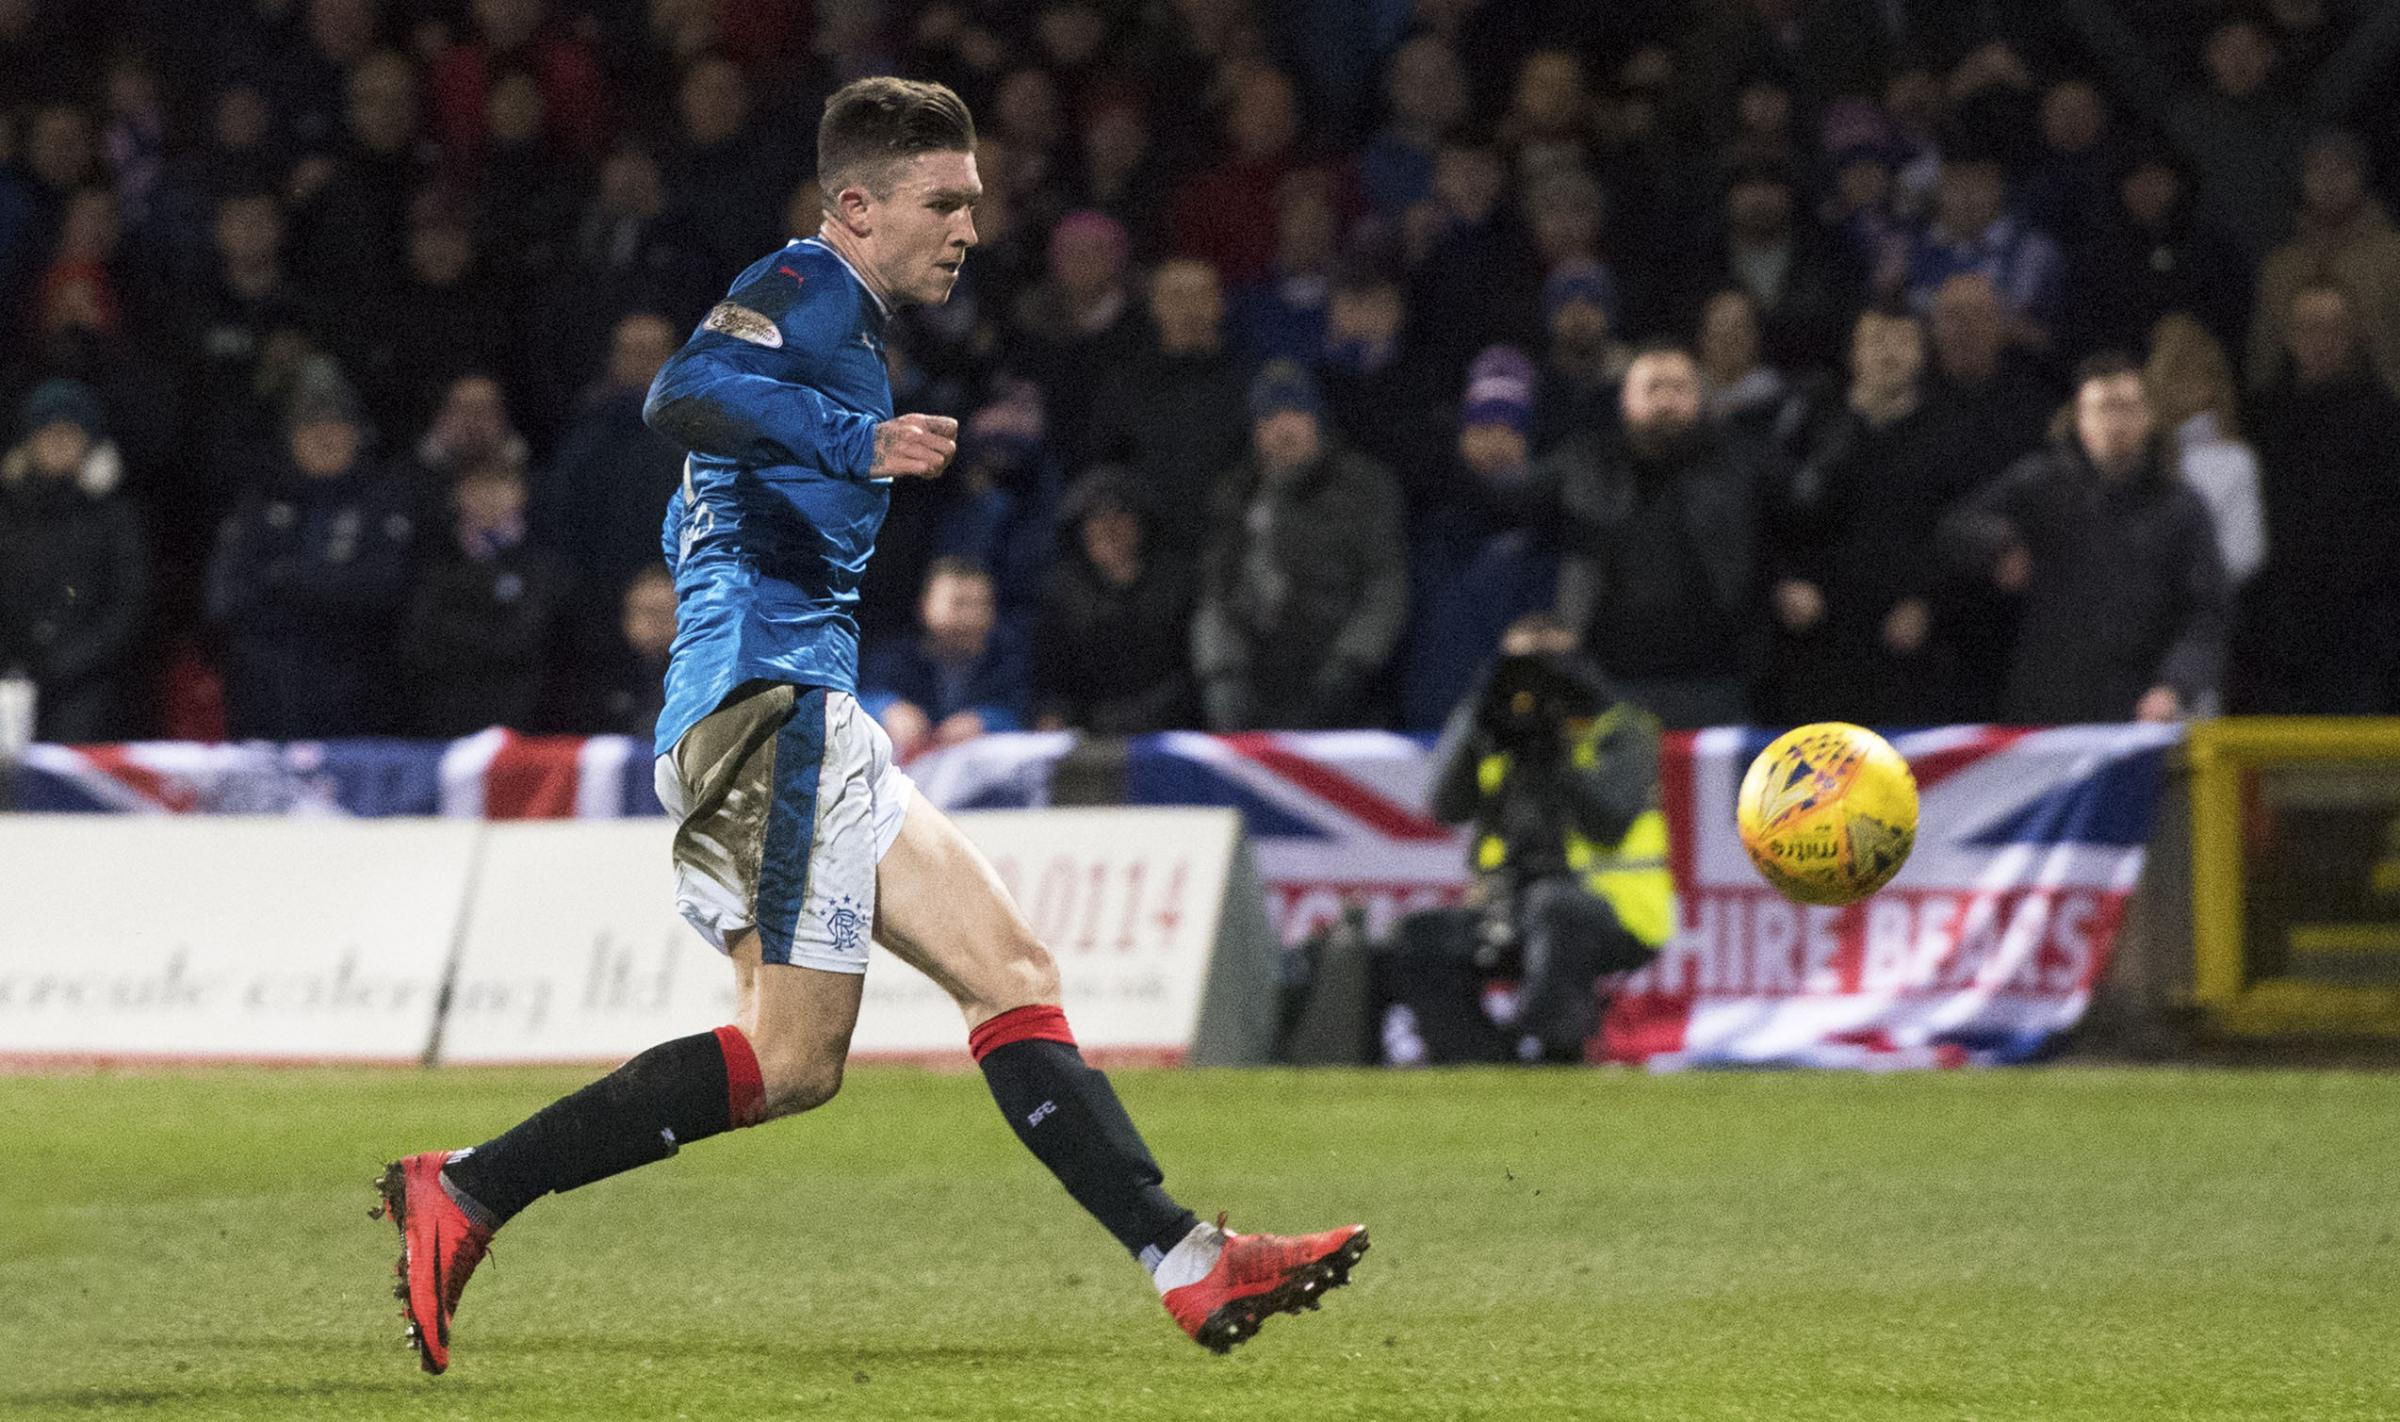 Josh Windass converts at the end of a fine move to put Rangers ahead against Partick Thistle